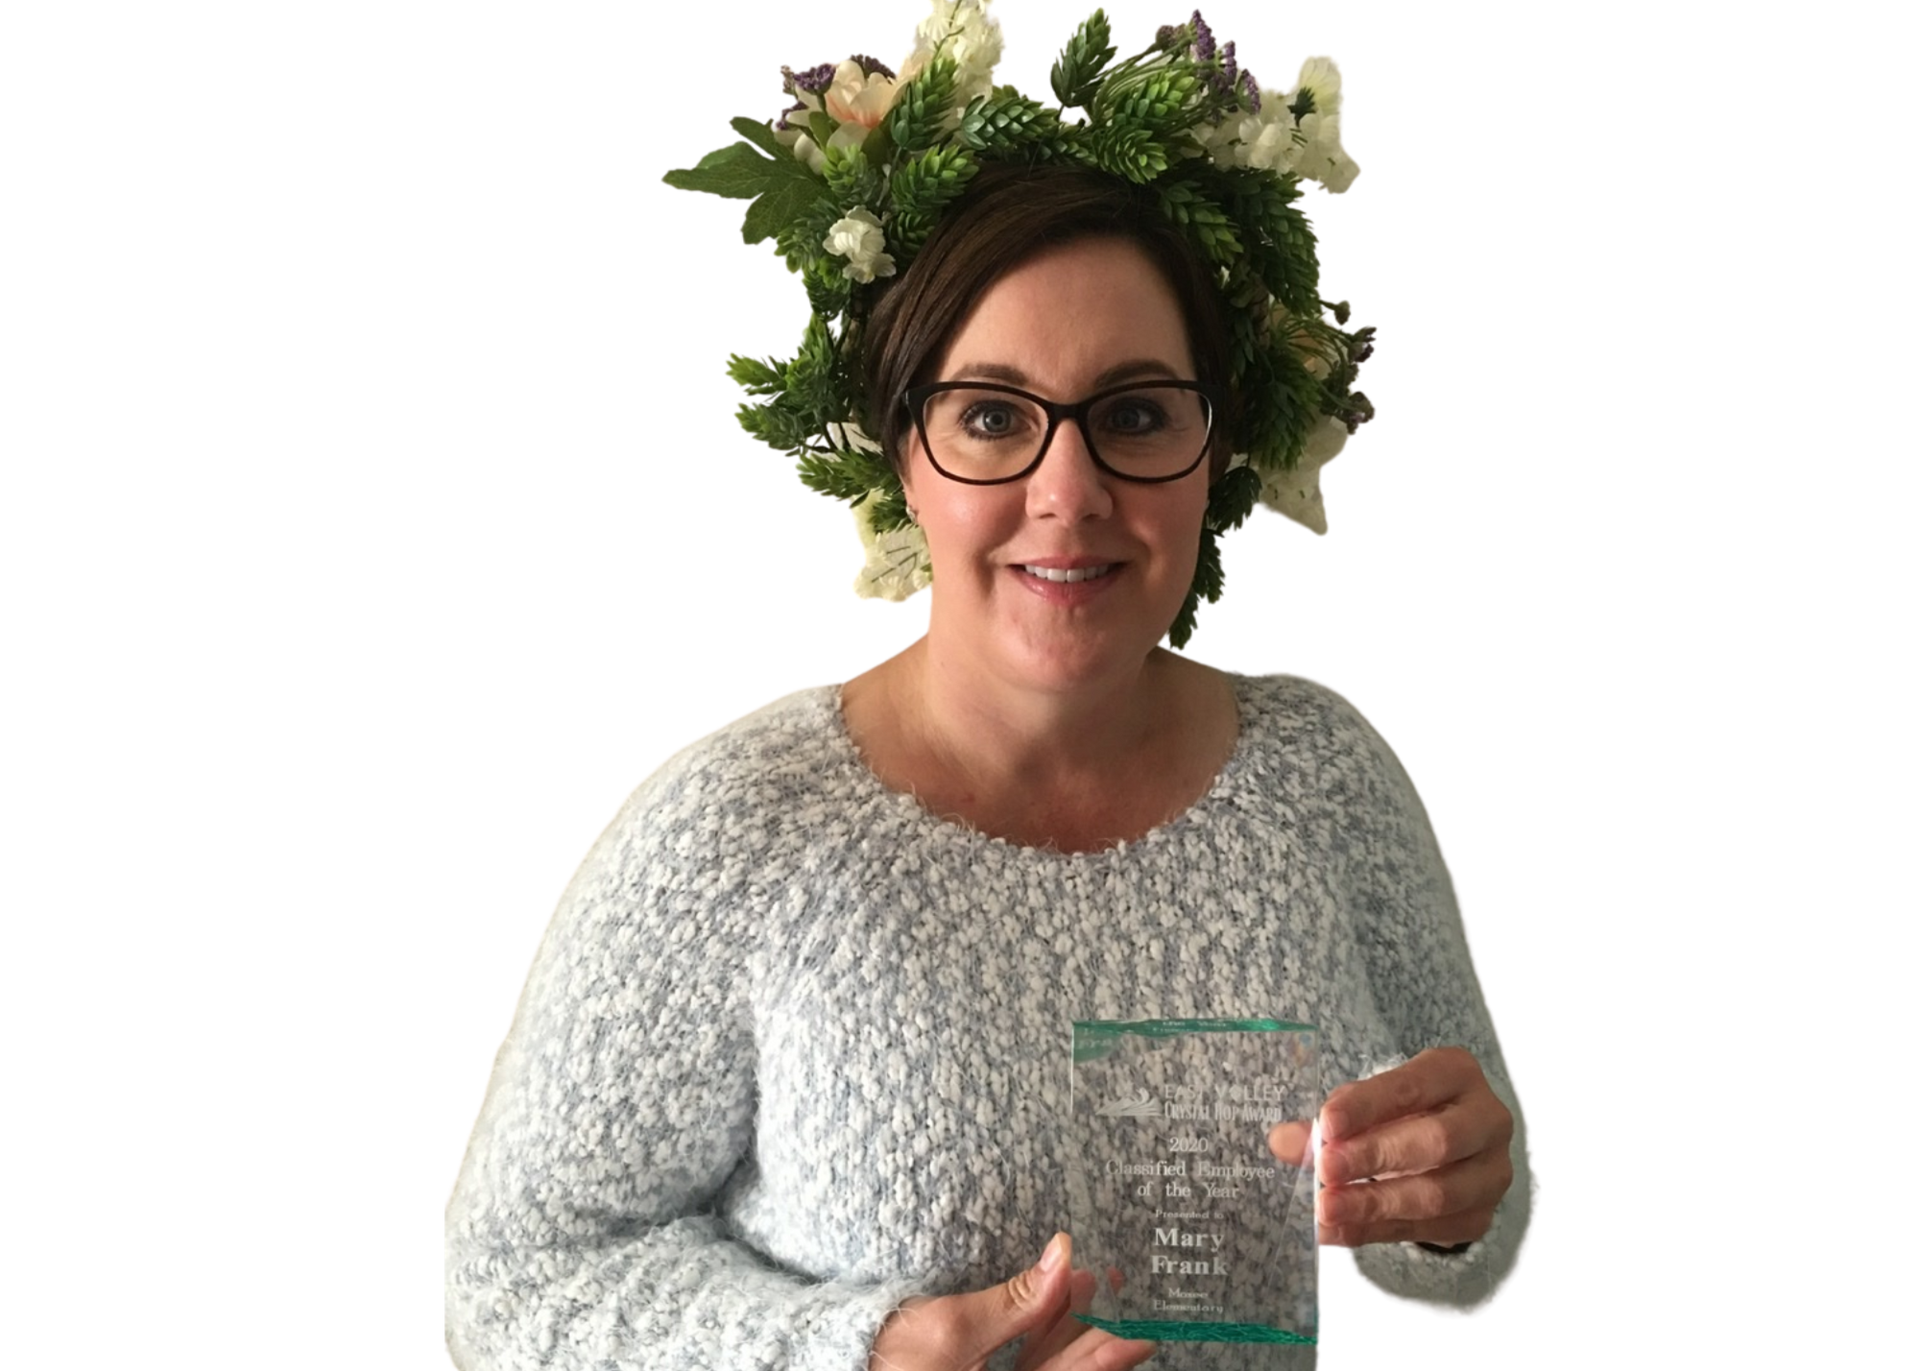 Mary Frank wearing hop crown and holding hop plaque.